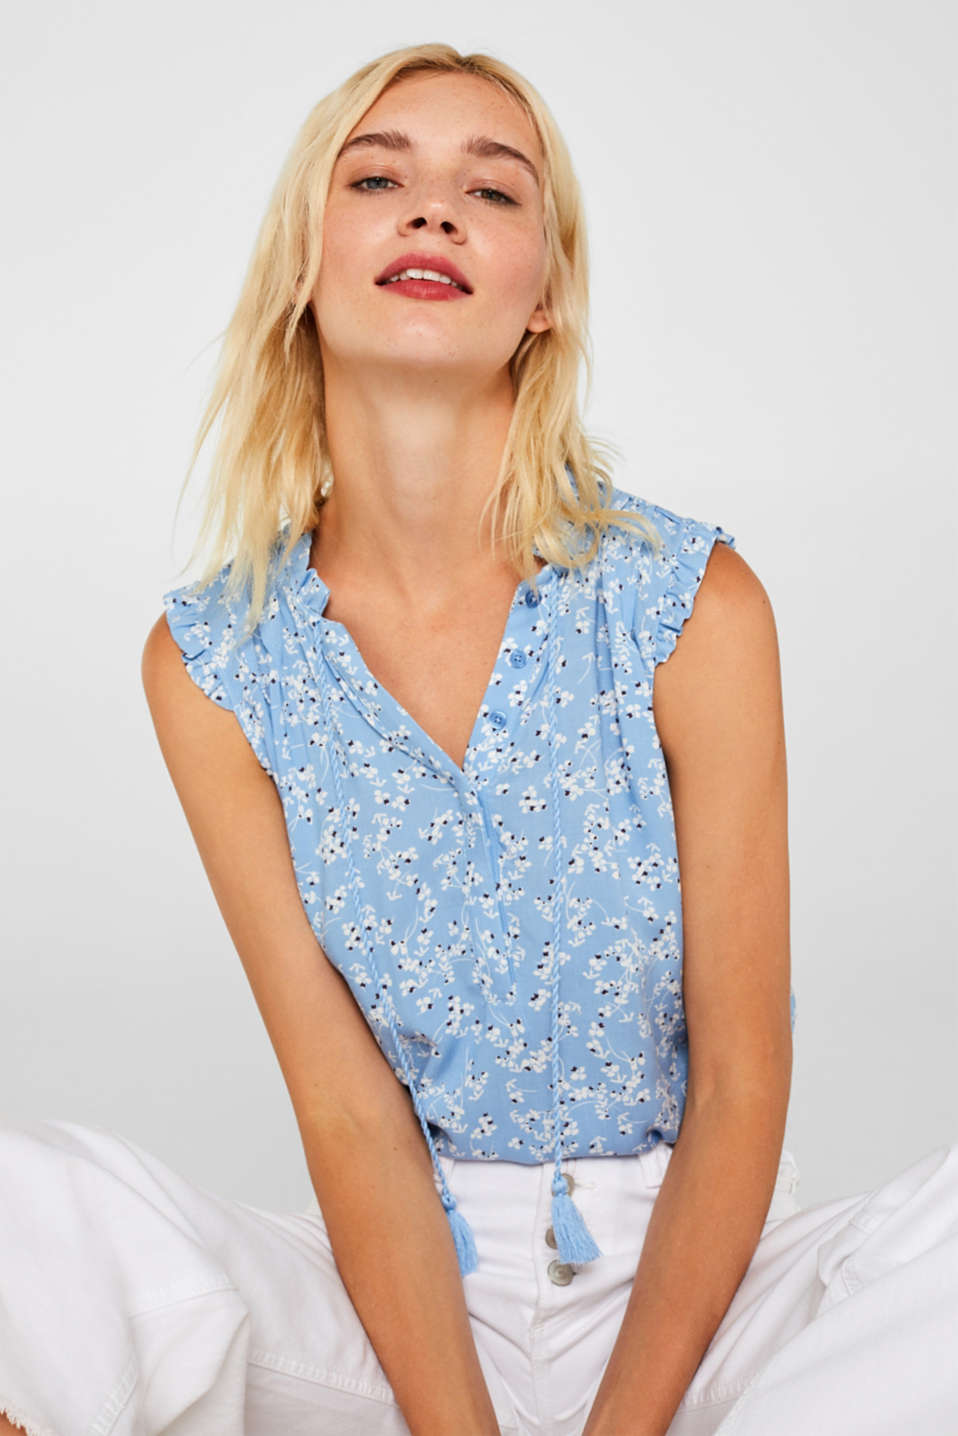 Esprit - Blouse top with a floral print and tasselled ties